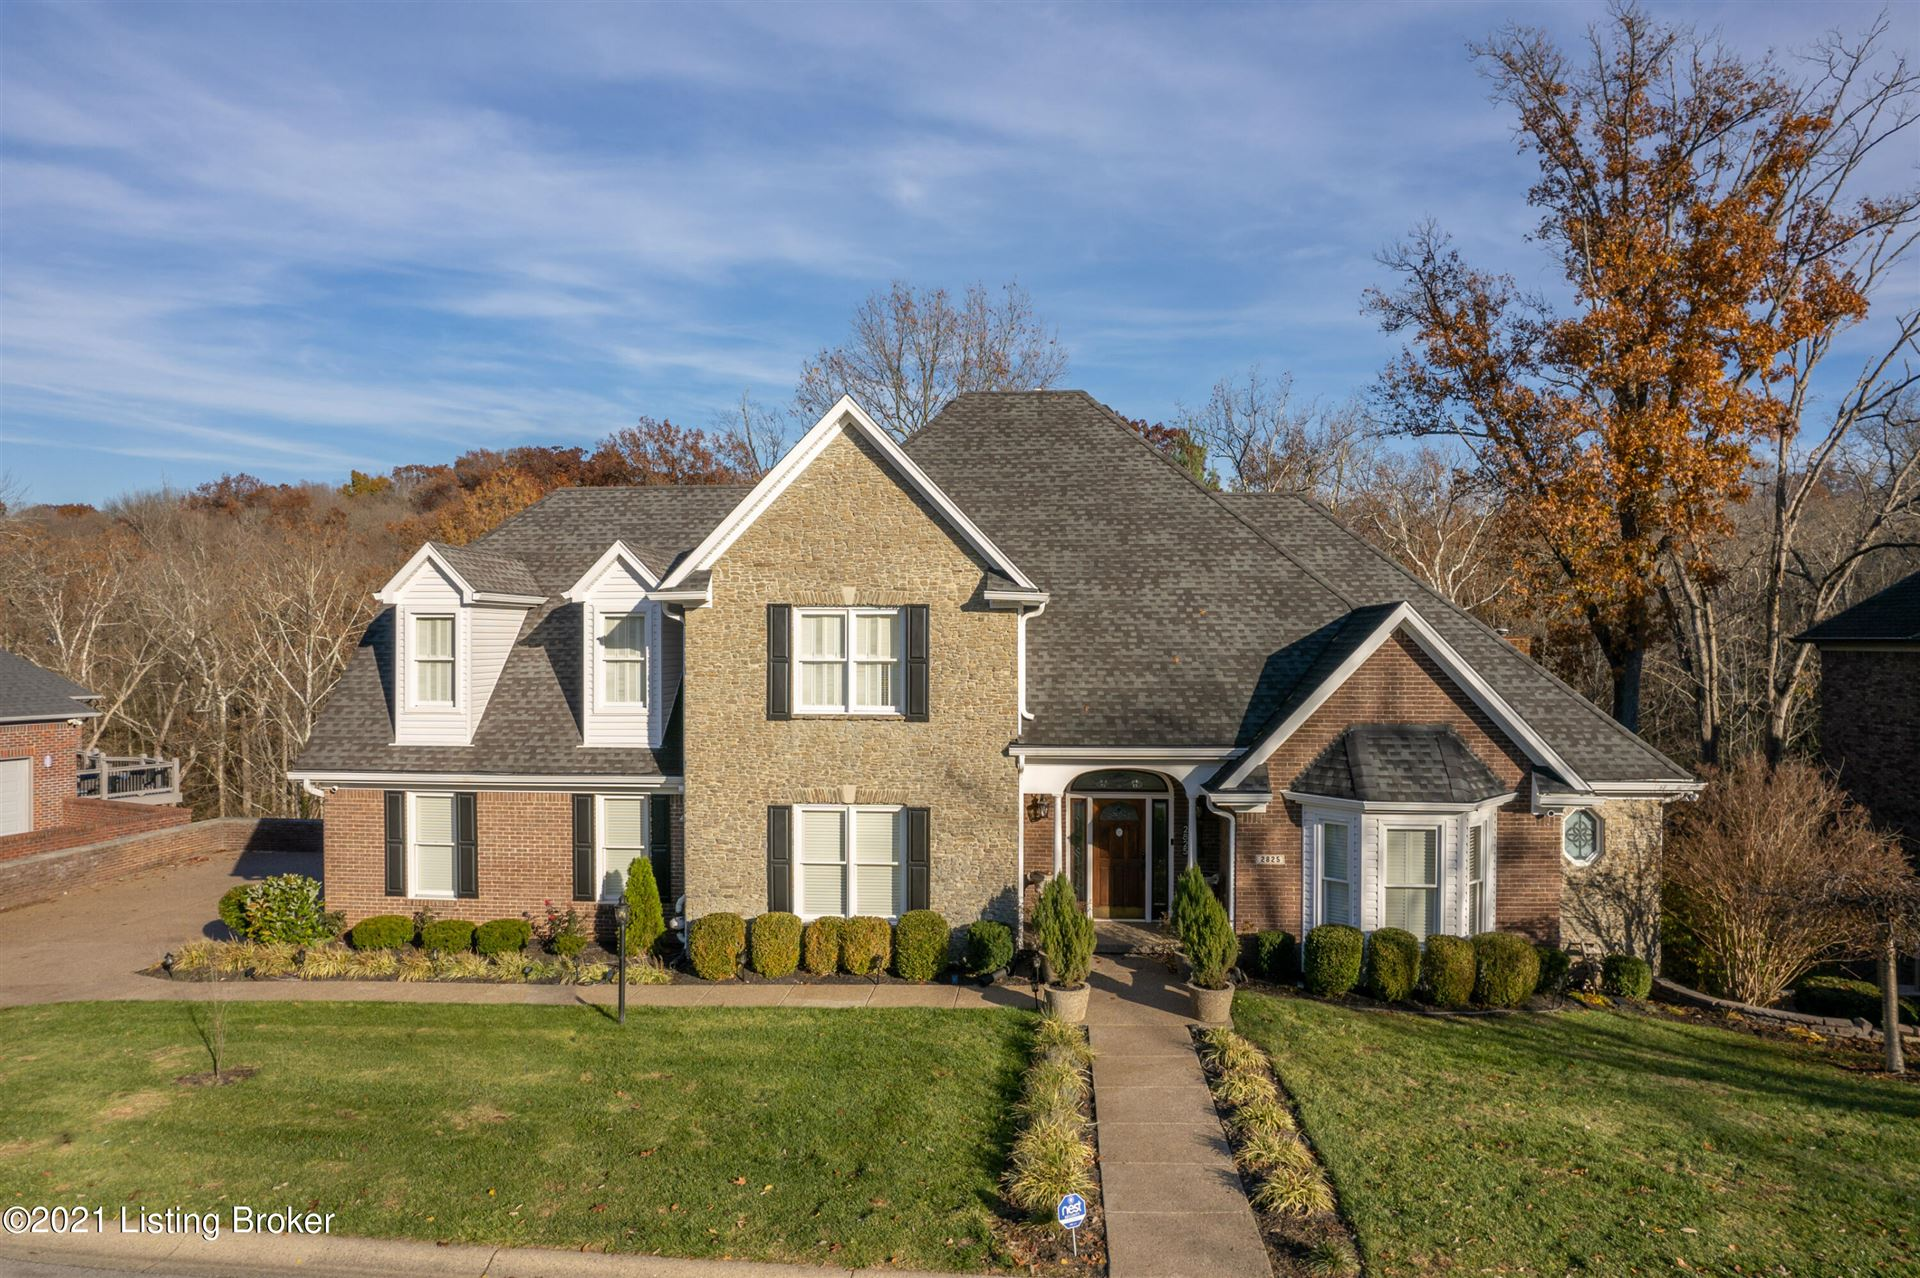 Photo for 2825 Avenue Of The Woods, Louisville, KY 40241 (MLS # 1596271)